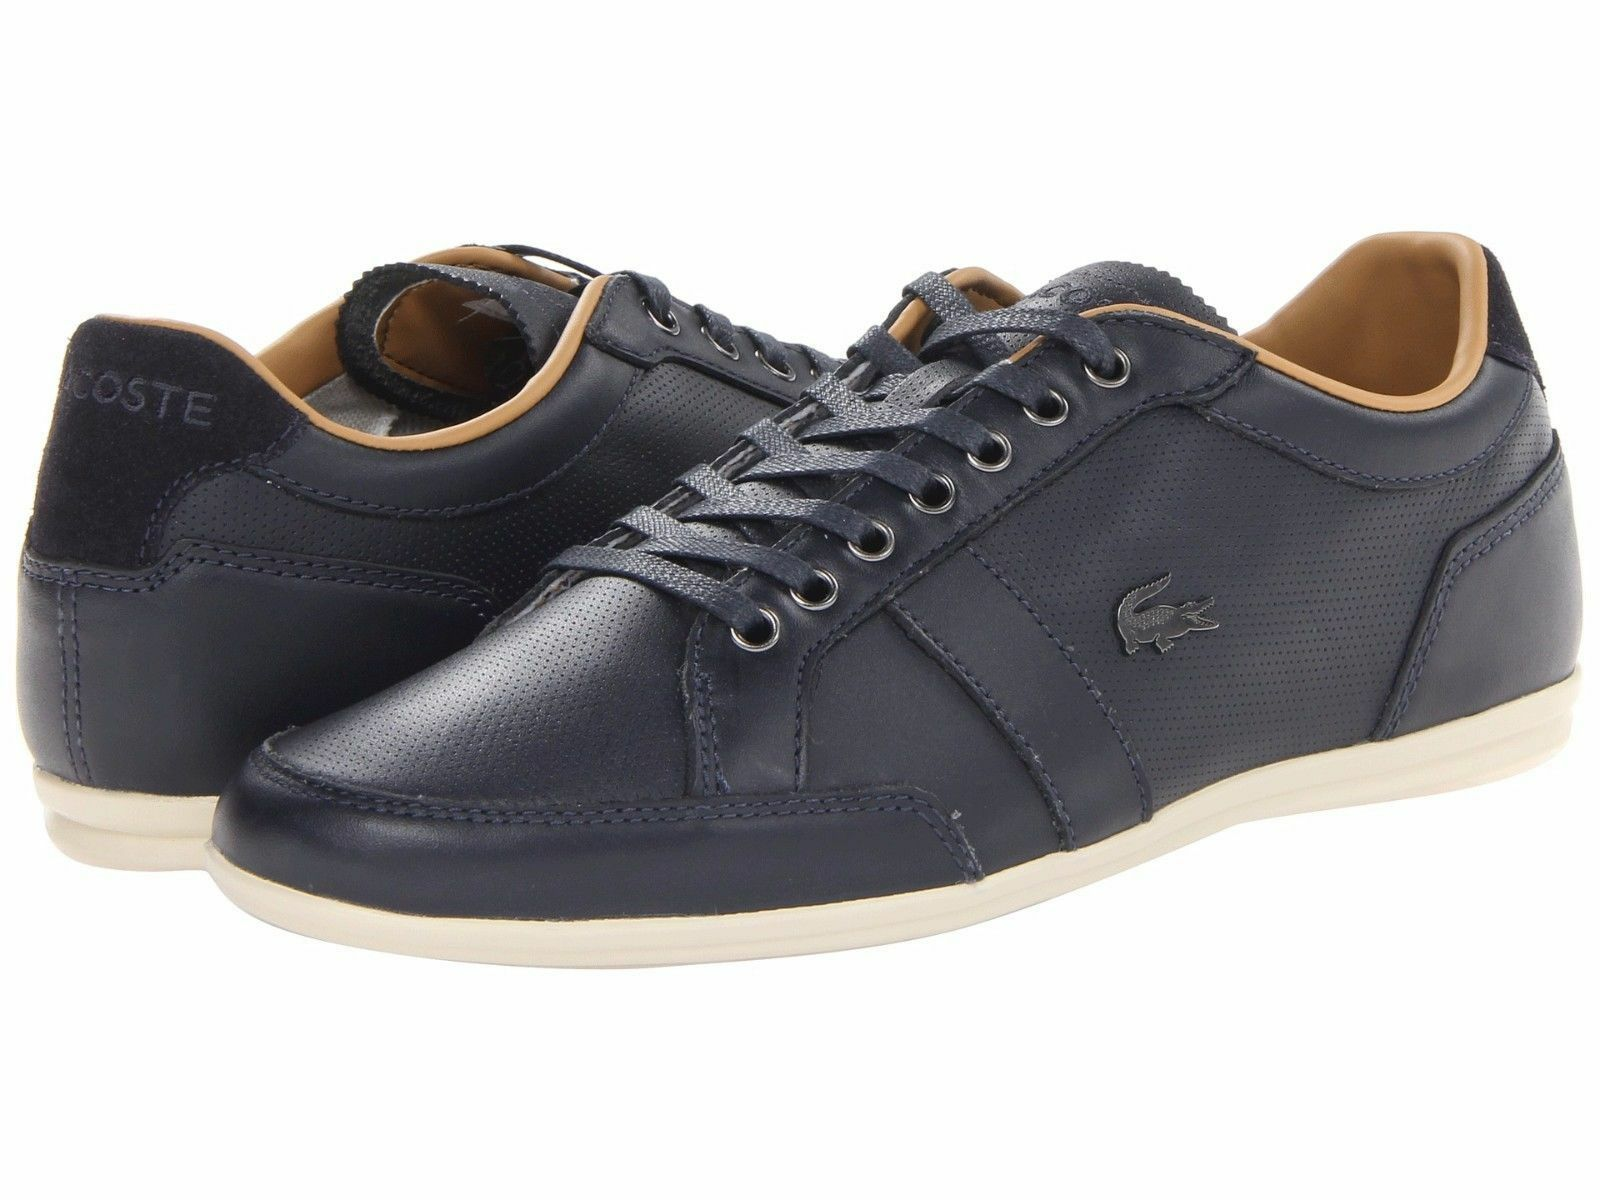 ef3e61ef0961e Size 12 LACOSTE Leather Mens Sneaker Shoe! Reg 150 Sale 79.99 -  74.79